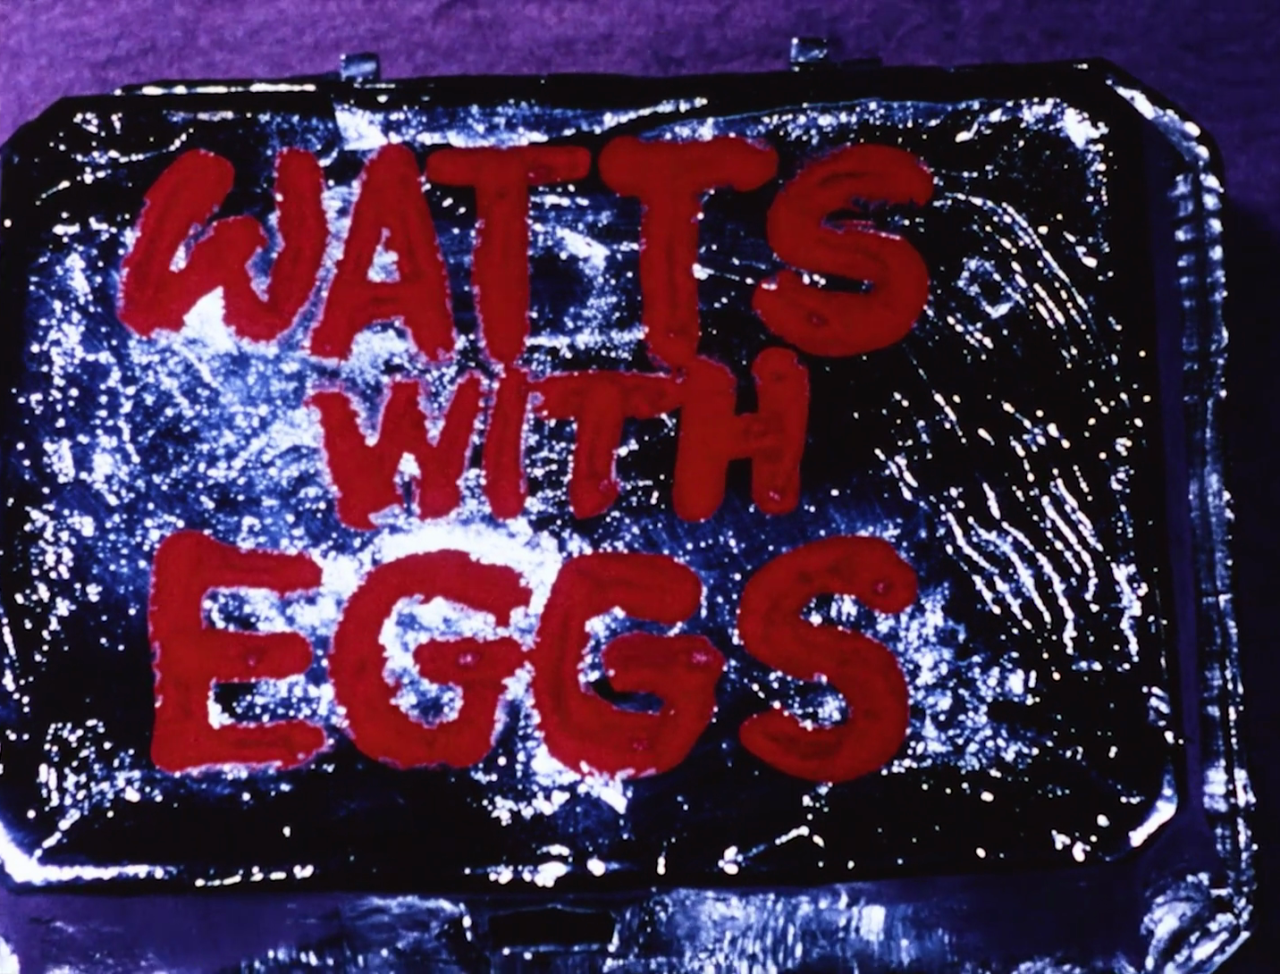 Watts with Eggs (Marie Menken, 1967) #watts with eggs #marie menken#short film#menken#eggs#colour#purple#experimental cinema#1967#title credits